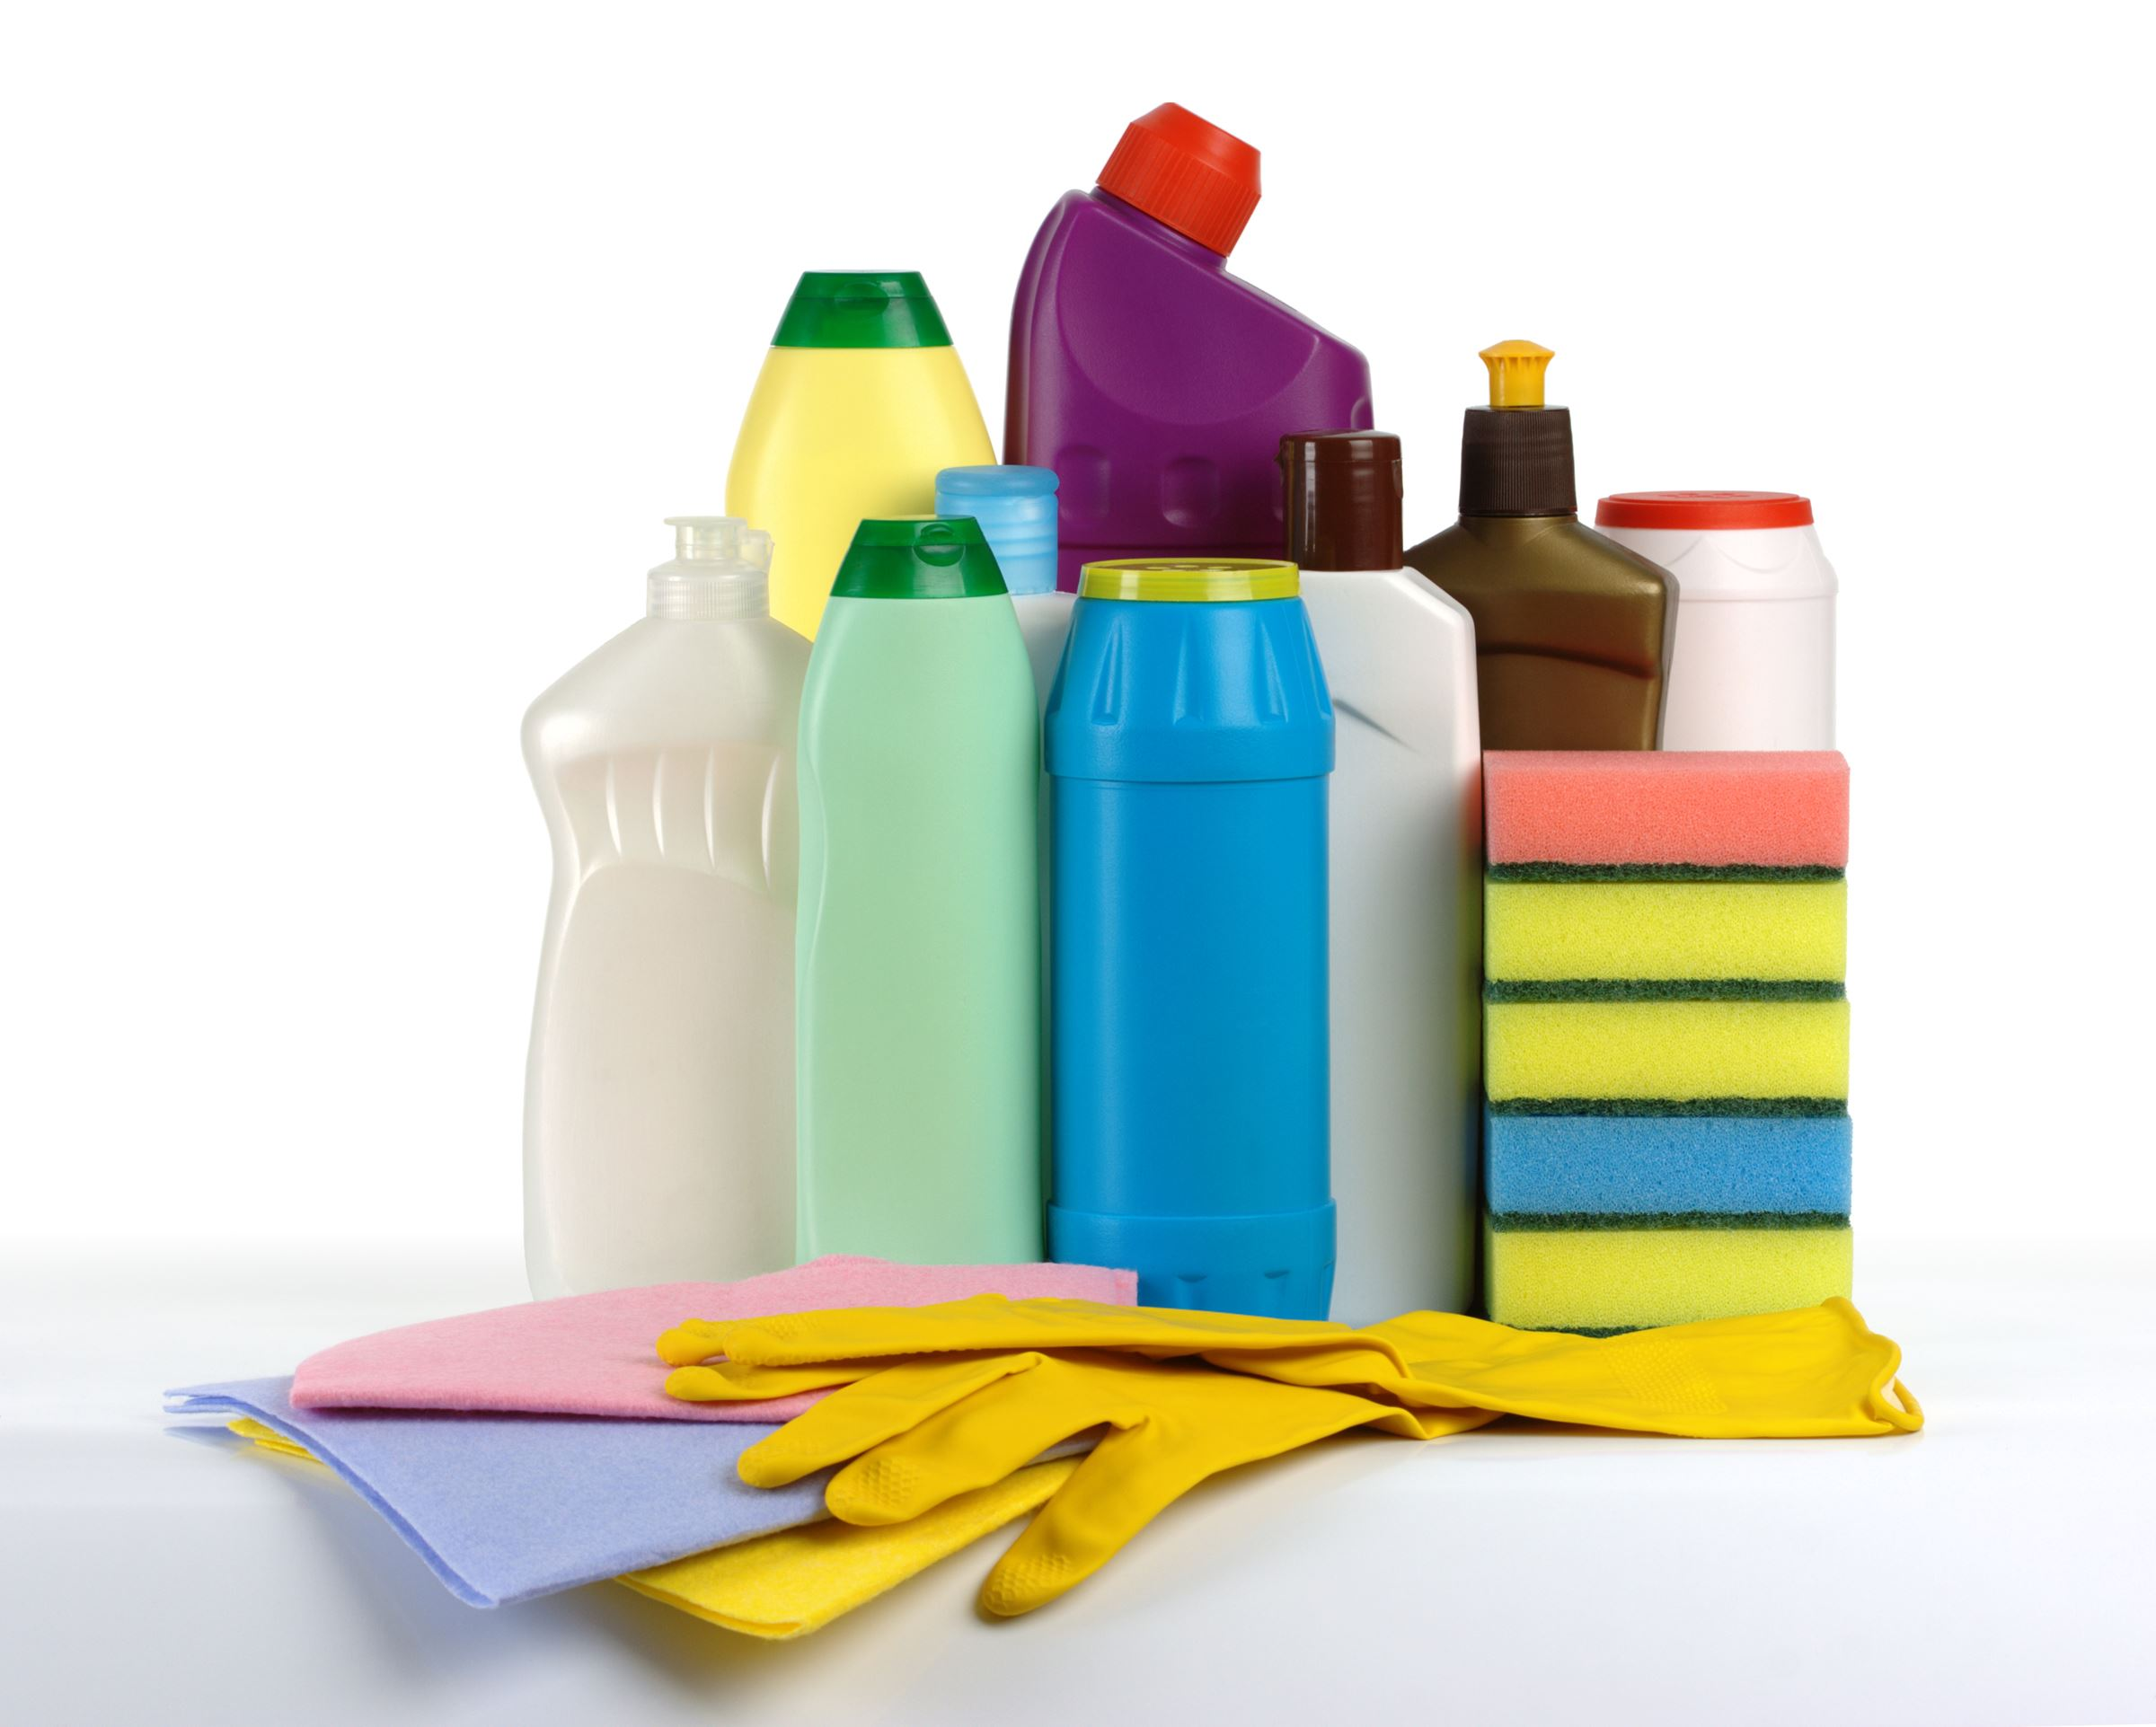 Bottles of cleaners, rubber gloves and sponges